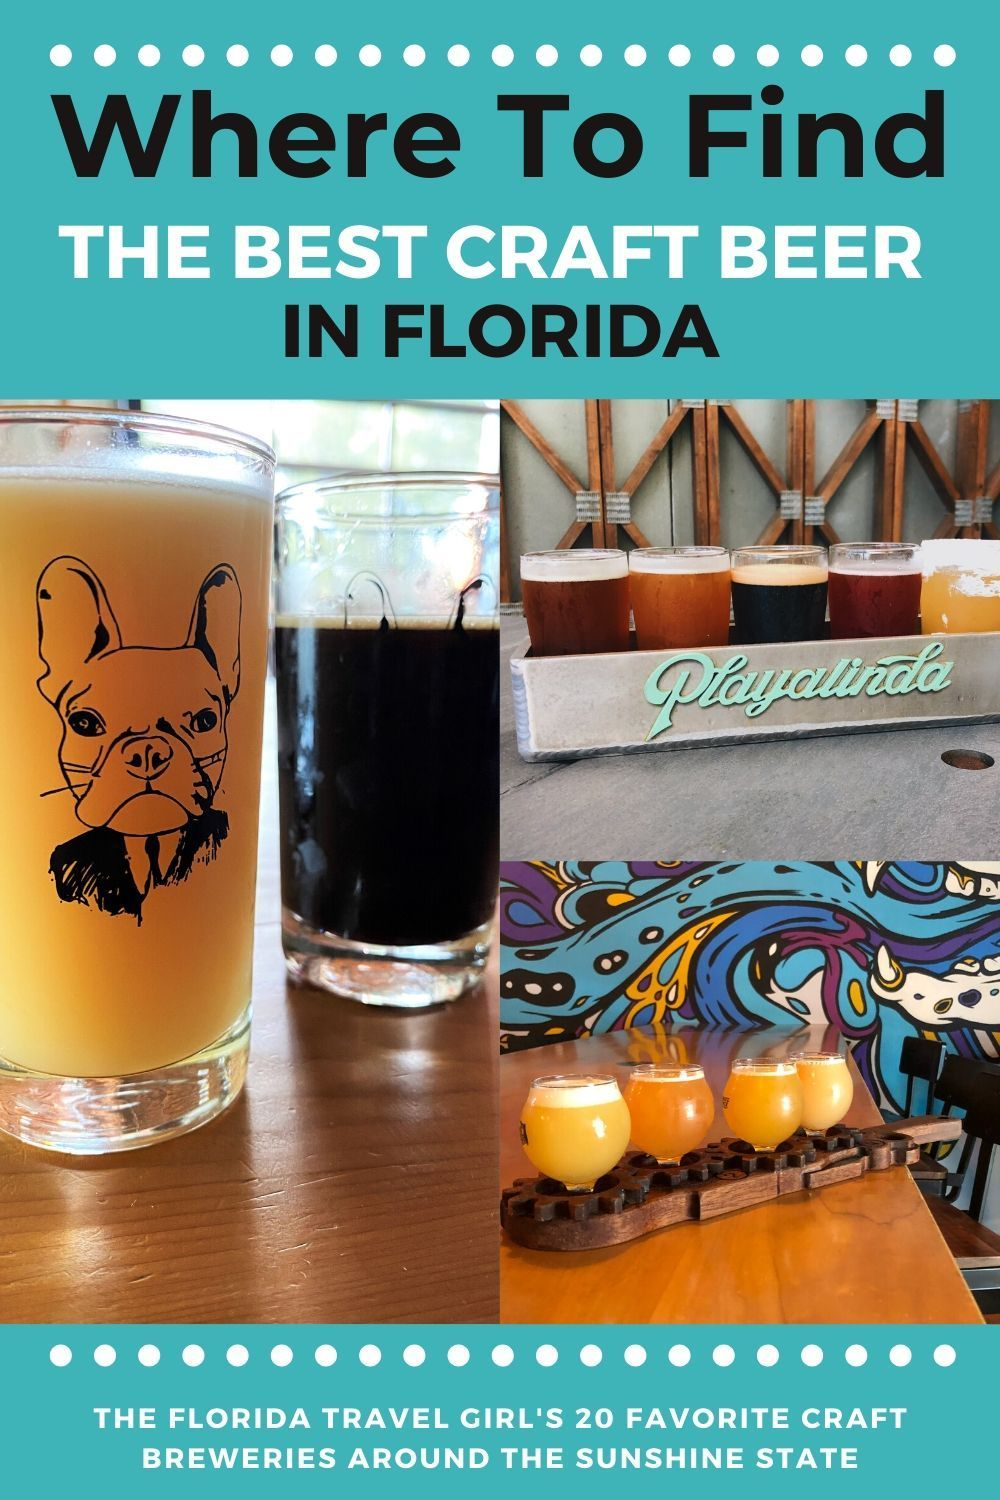 13+ Florida craft beer list ideas